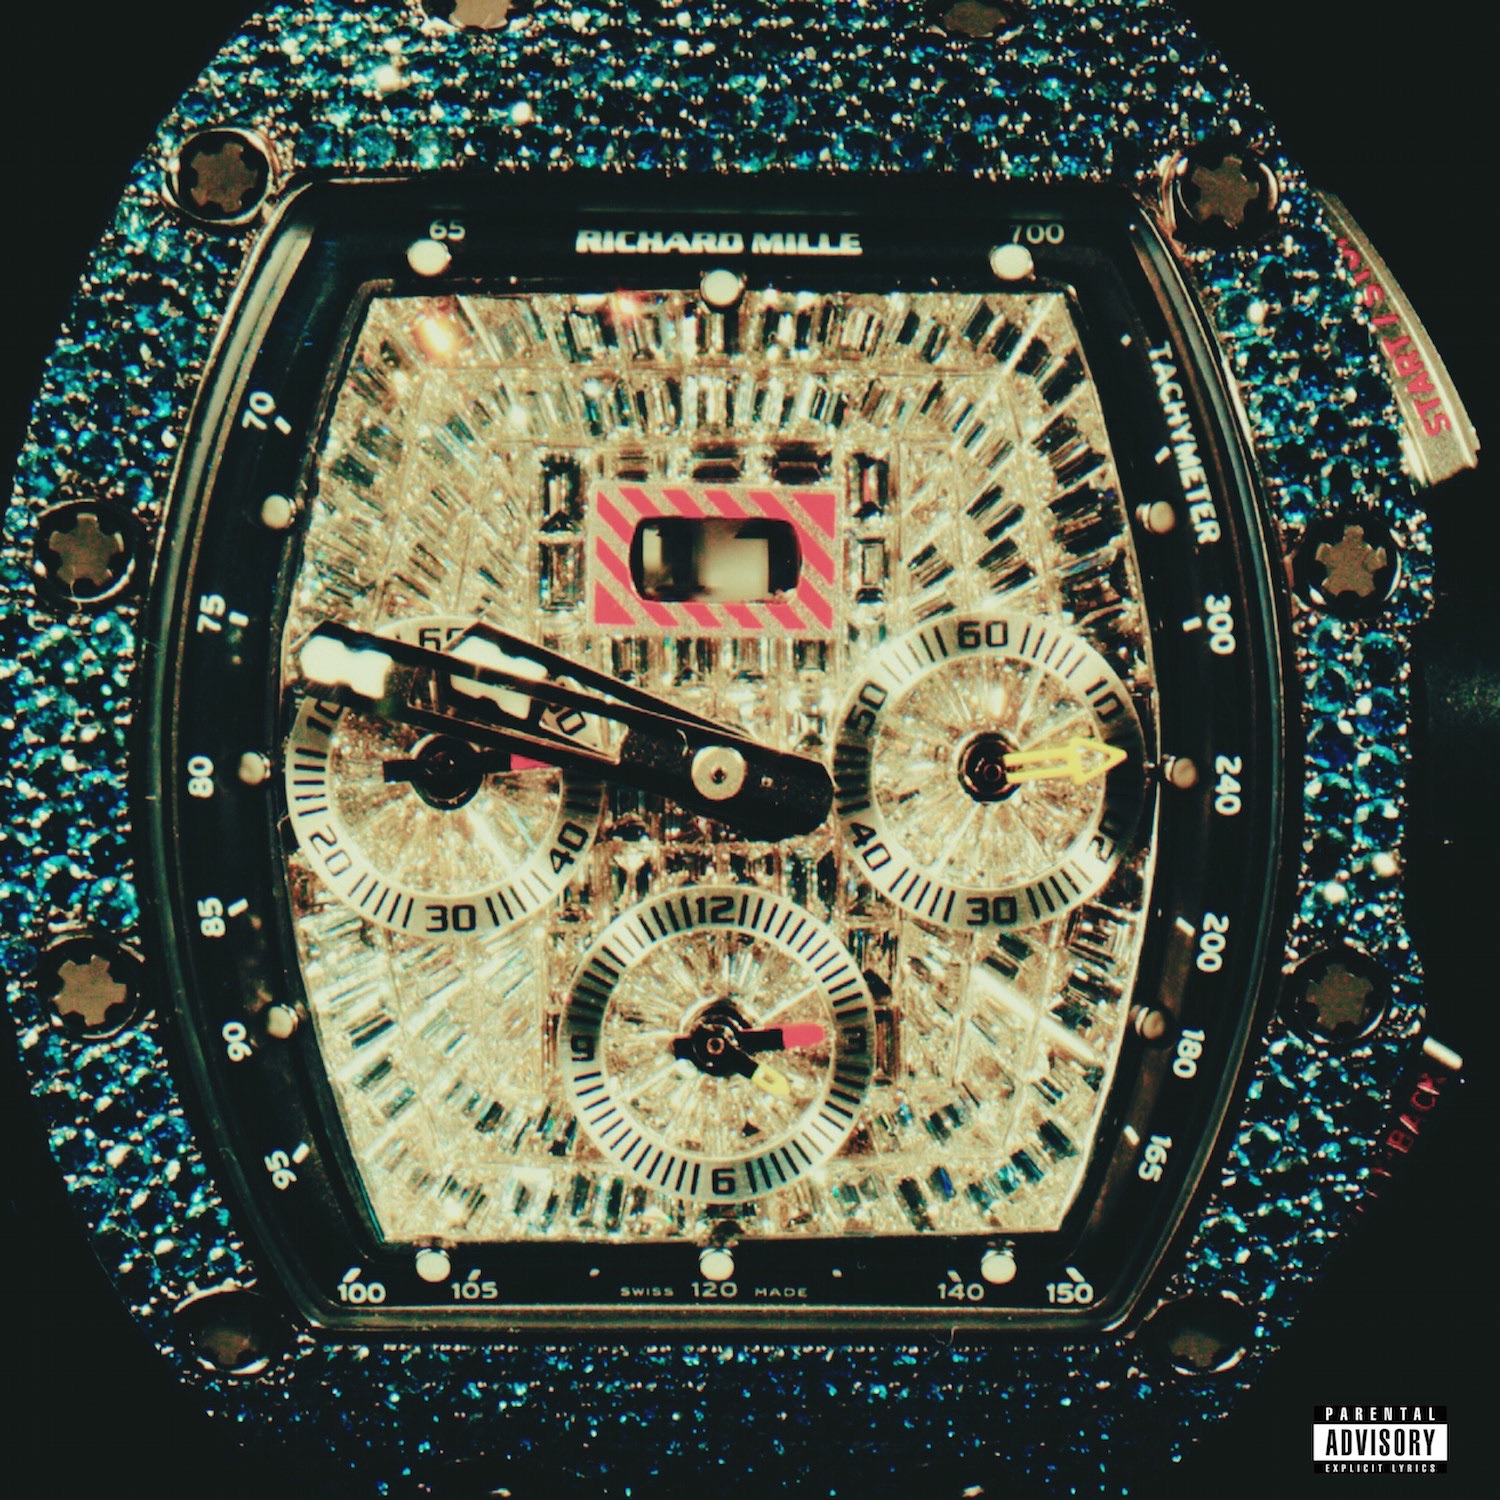 Art for Blue Diamonds by Young Dolph